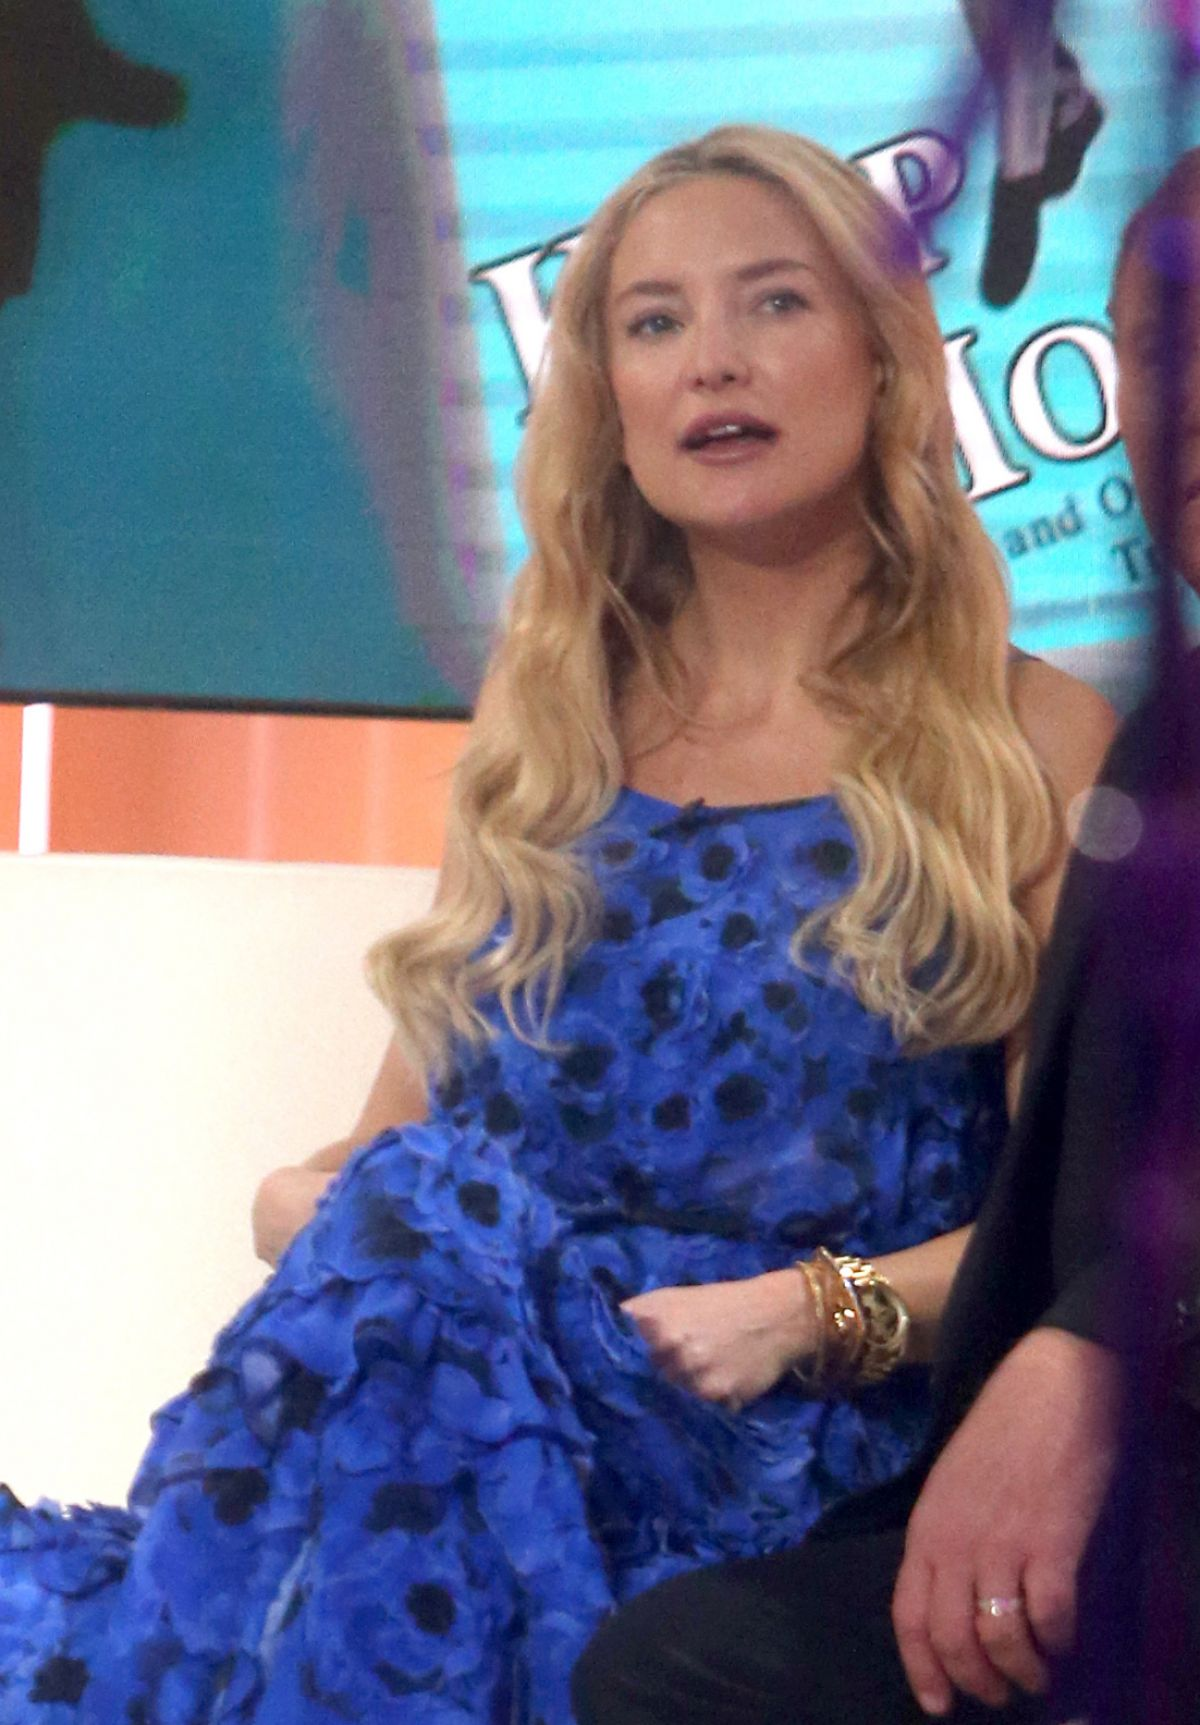 KATE HUDSON at Today Show in New York 10/15/2015 - HawtCelebs ... Kate Hudson